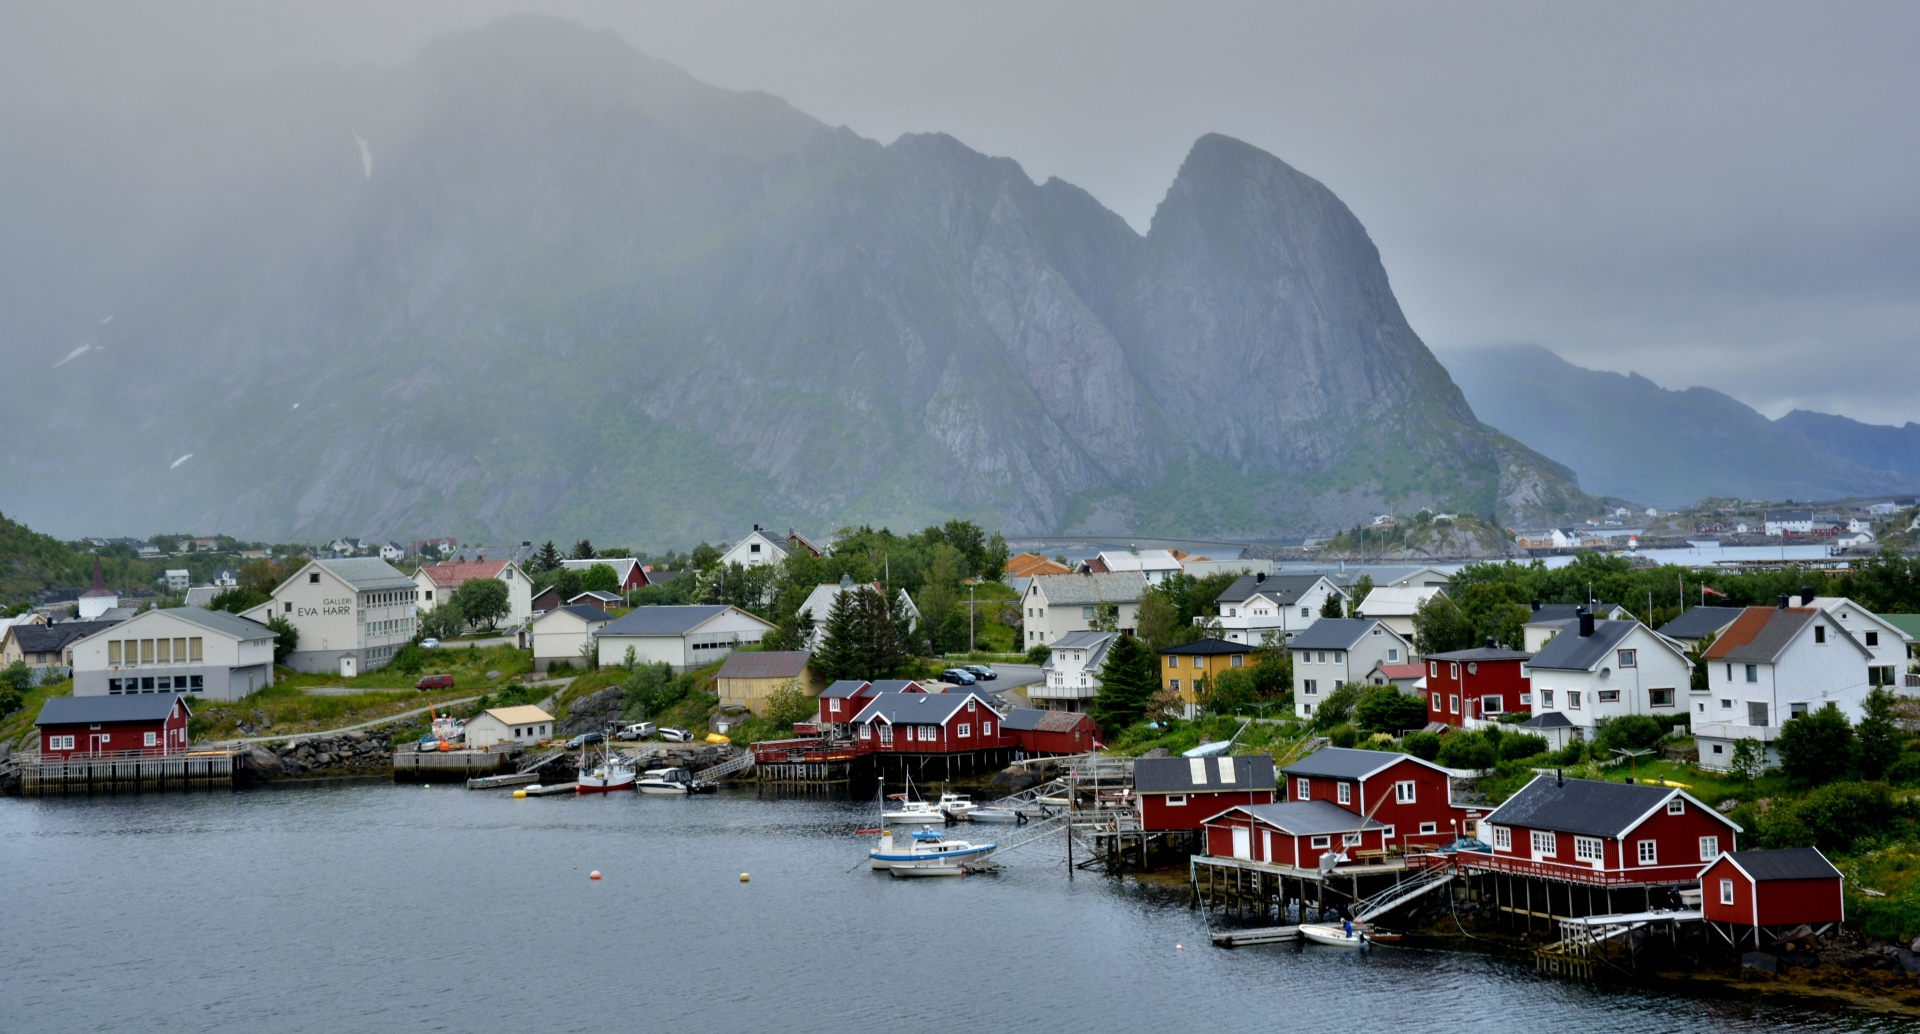 Top-Rated Place in Islands of Norway-Lofoten Islands